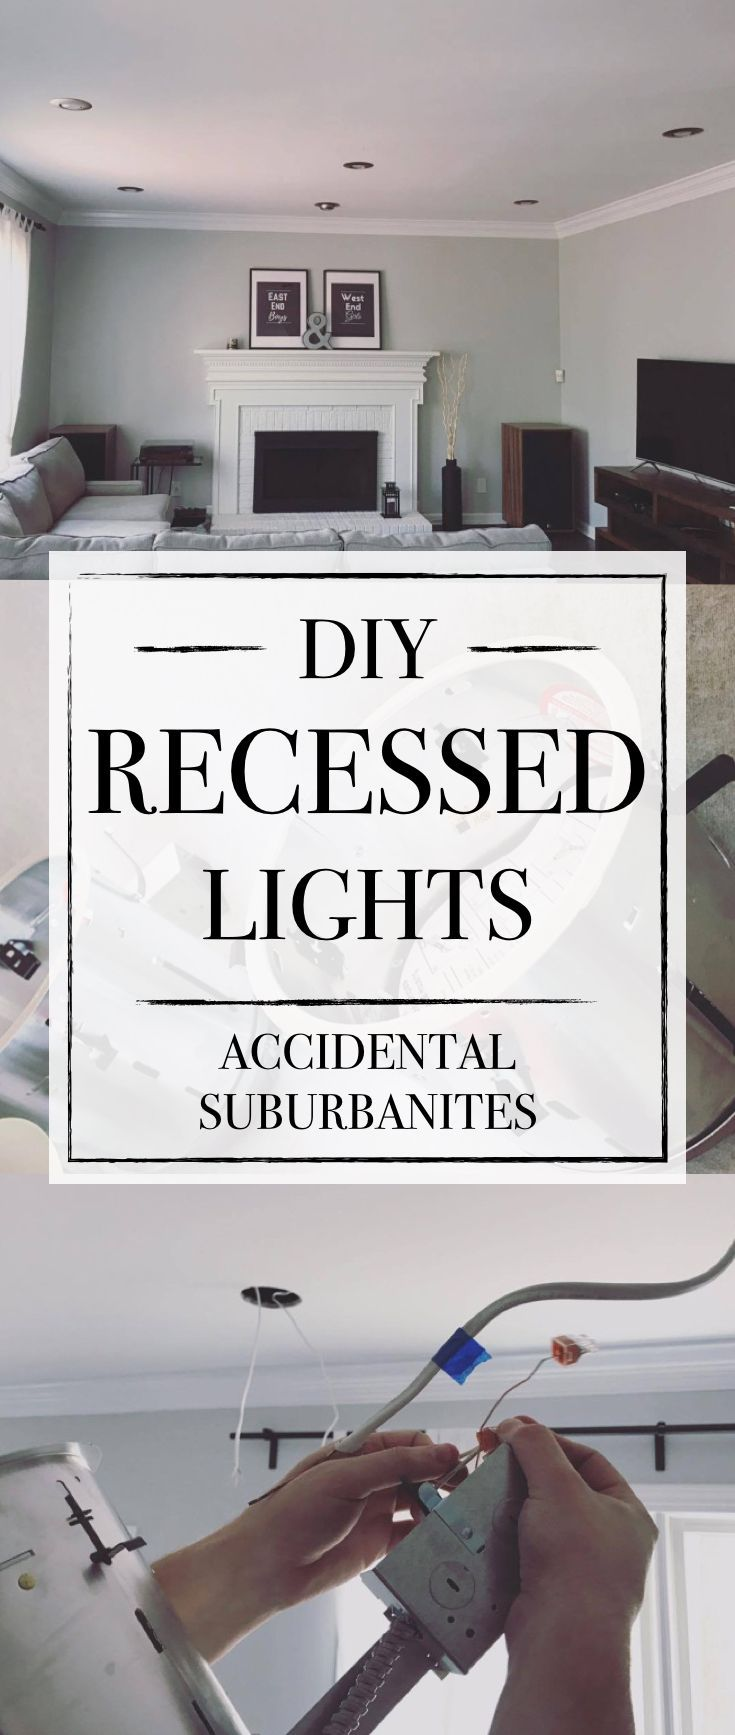 How To Wire Recessed Lighting New Diy Recessed Lighting  How To Install Recessed Lights With No Attic Design Inspiration